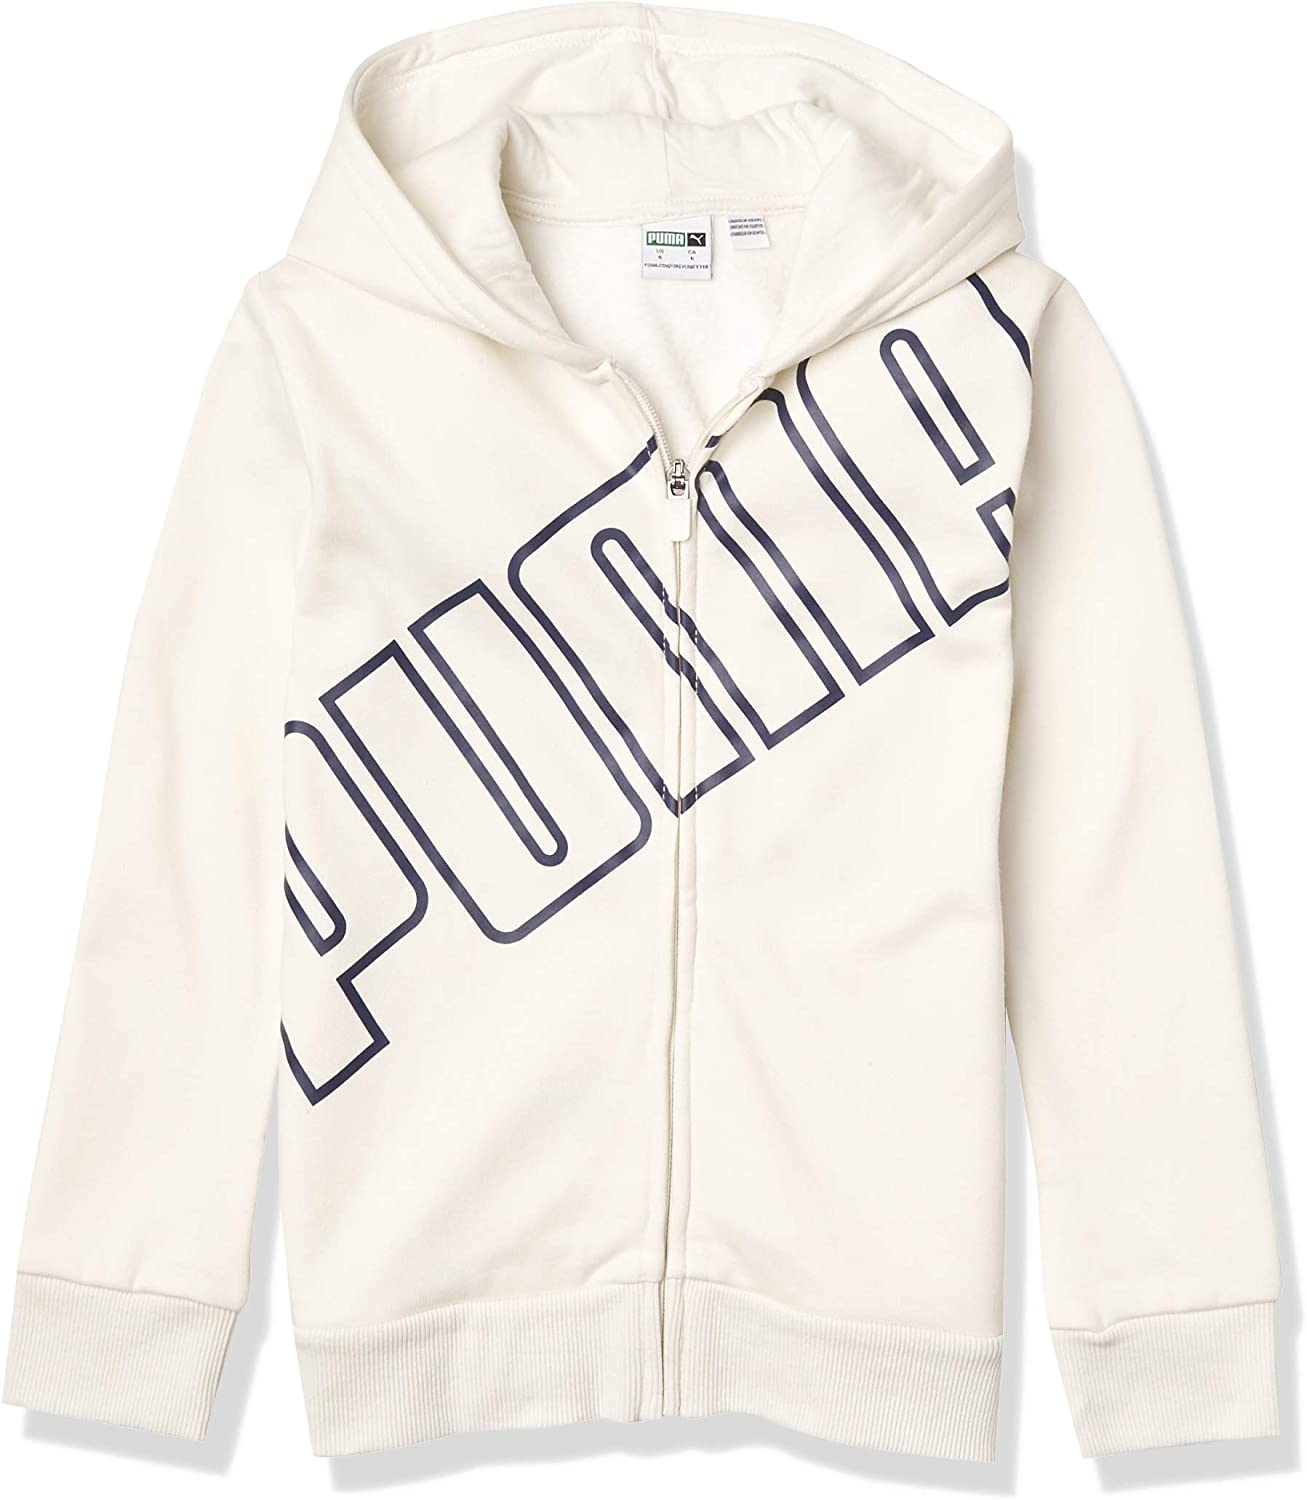 PUMA Boys' Popular shop is the lowest price challenge Zip Hoodie Up Daily bargain sale